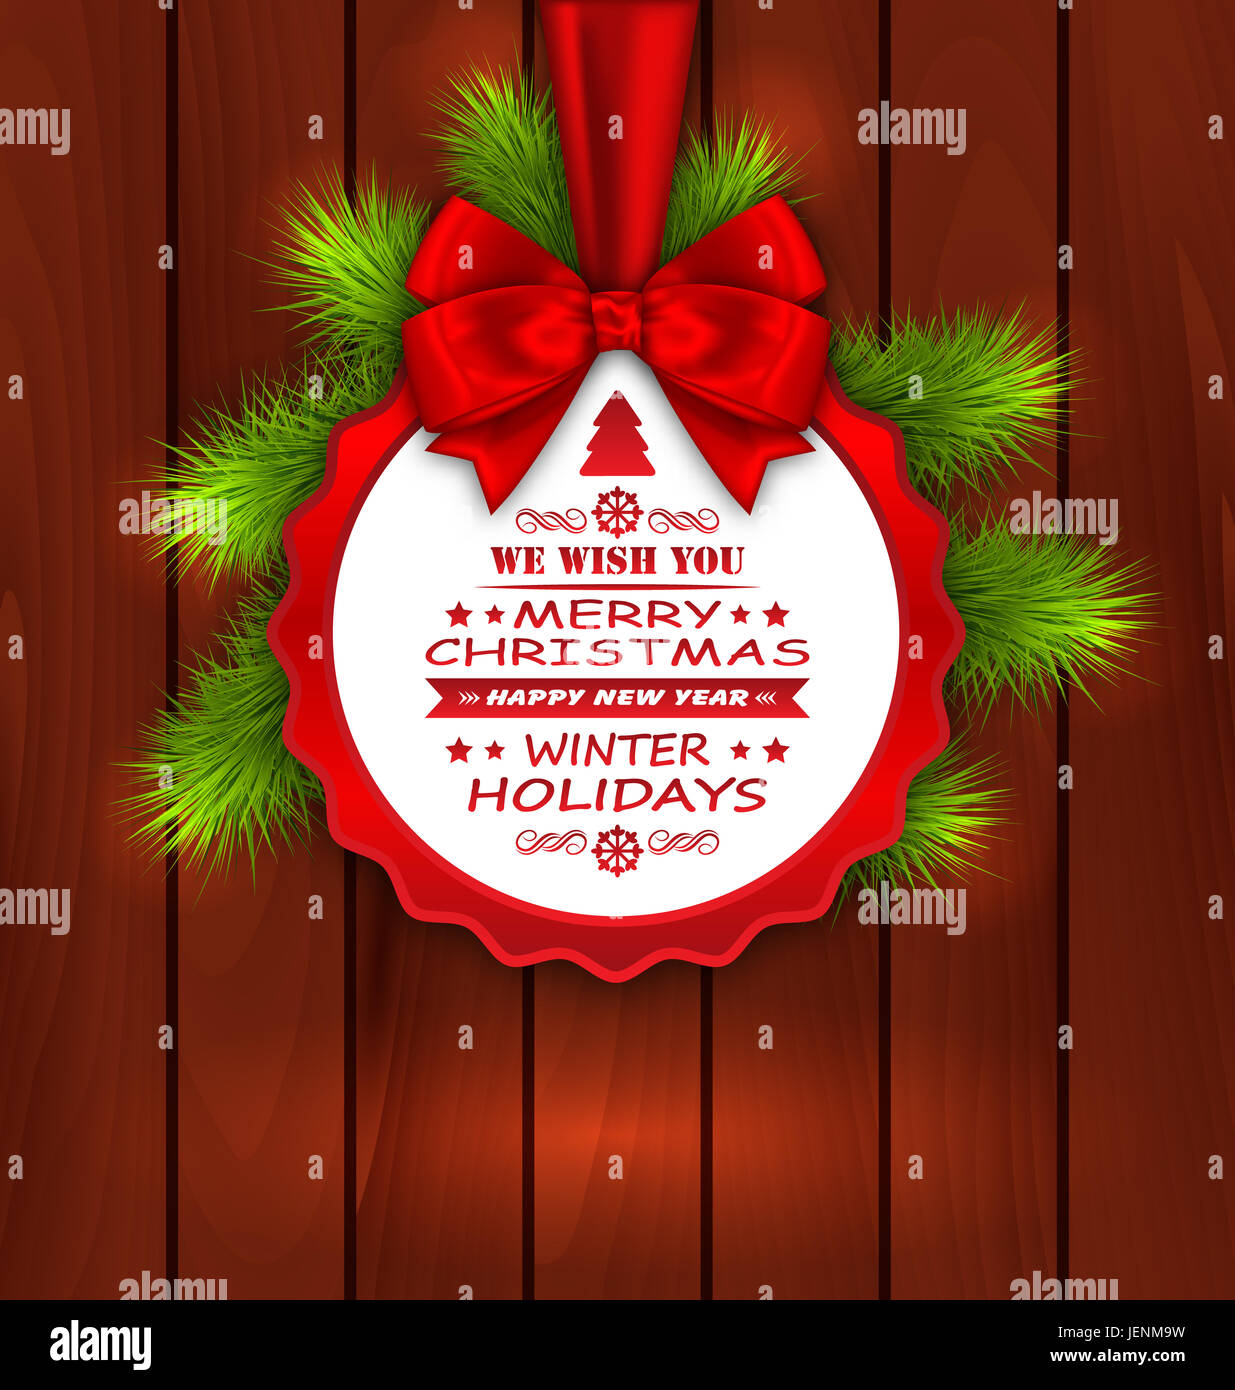 Yule Weihnachten Message Poster Stock Photos & Yule Weihnachten ...